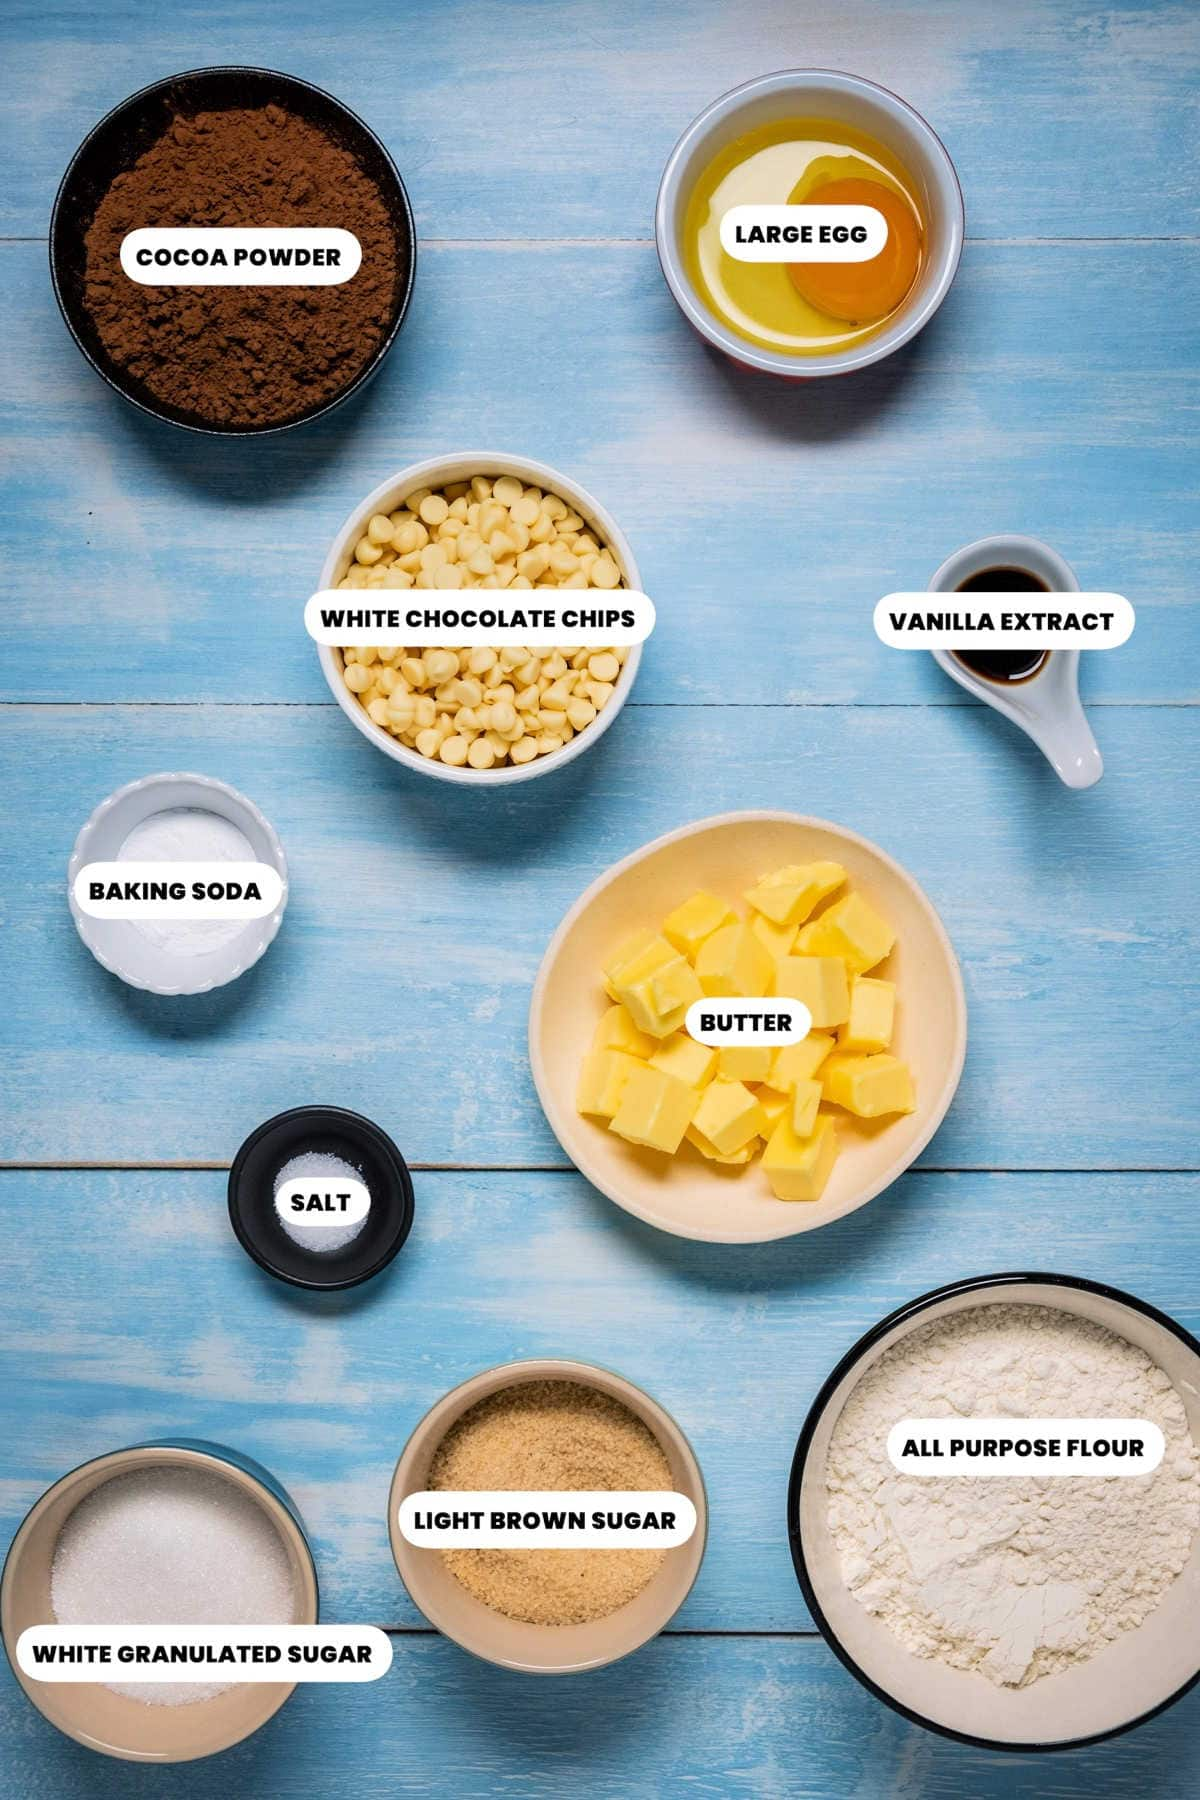 Photo of the ingredients to make inside out chocolate chip cookies.